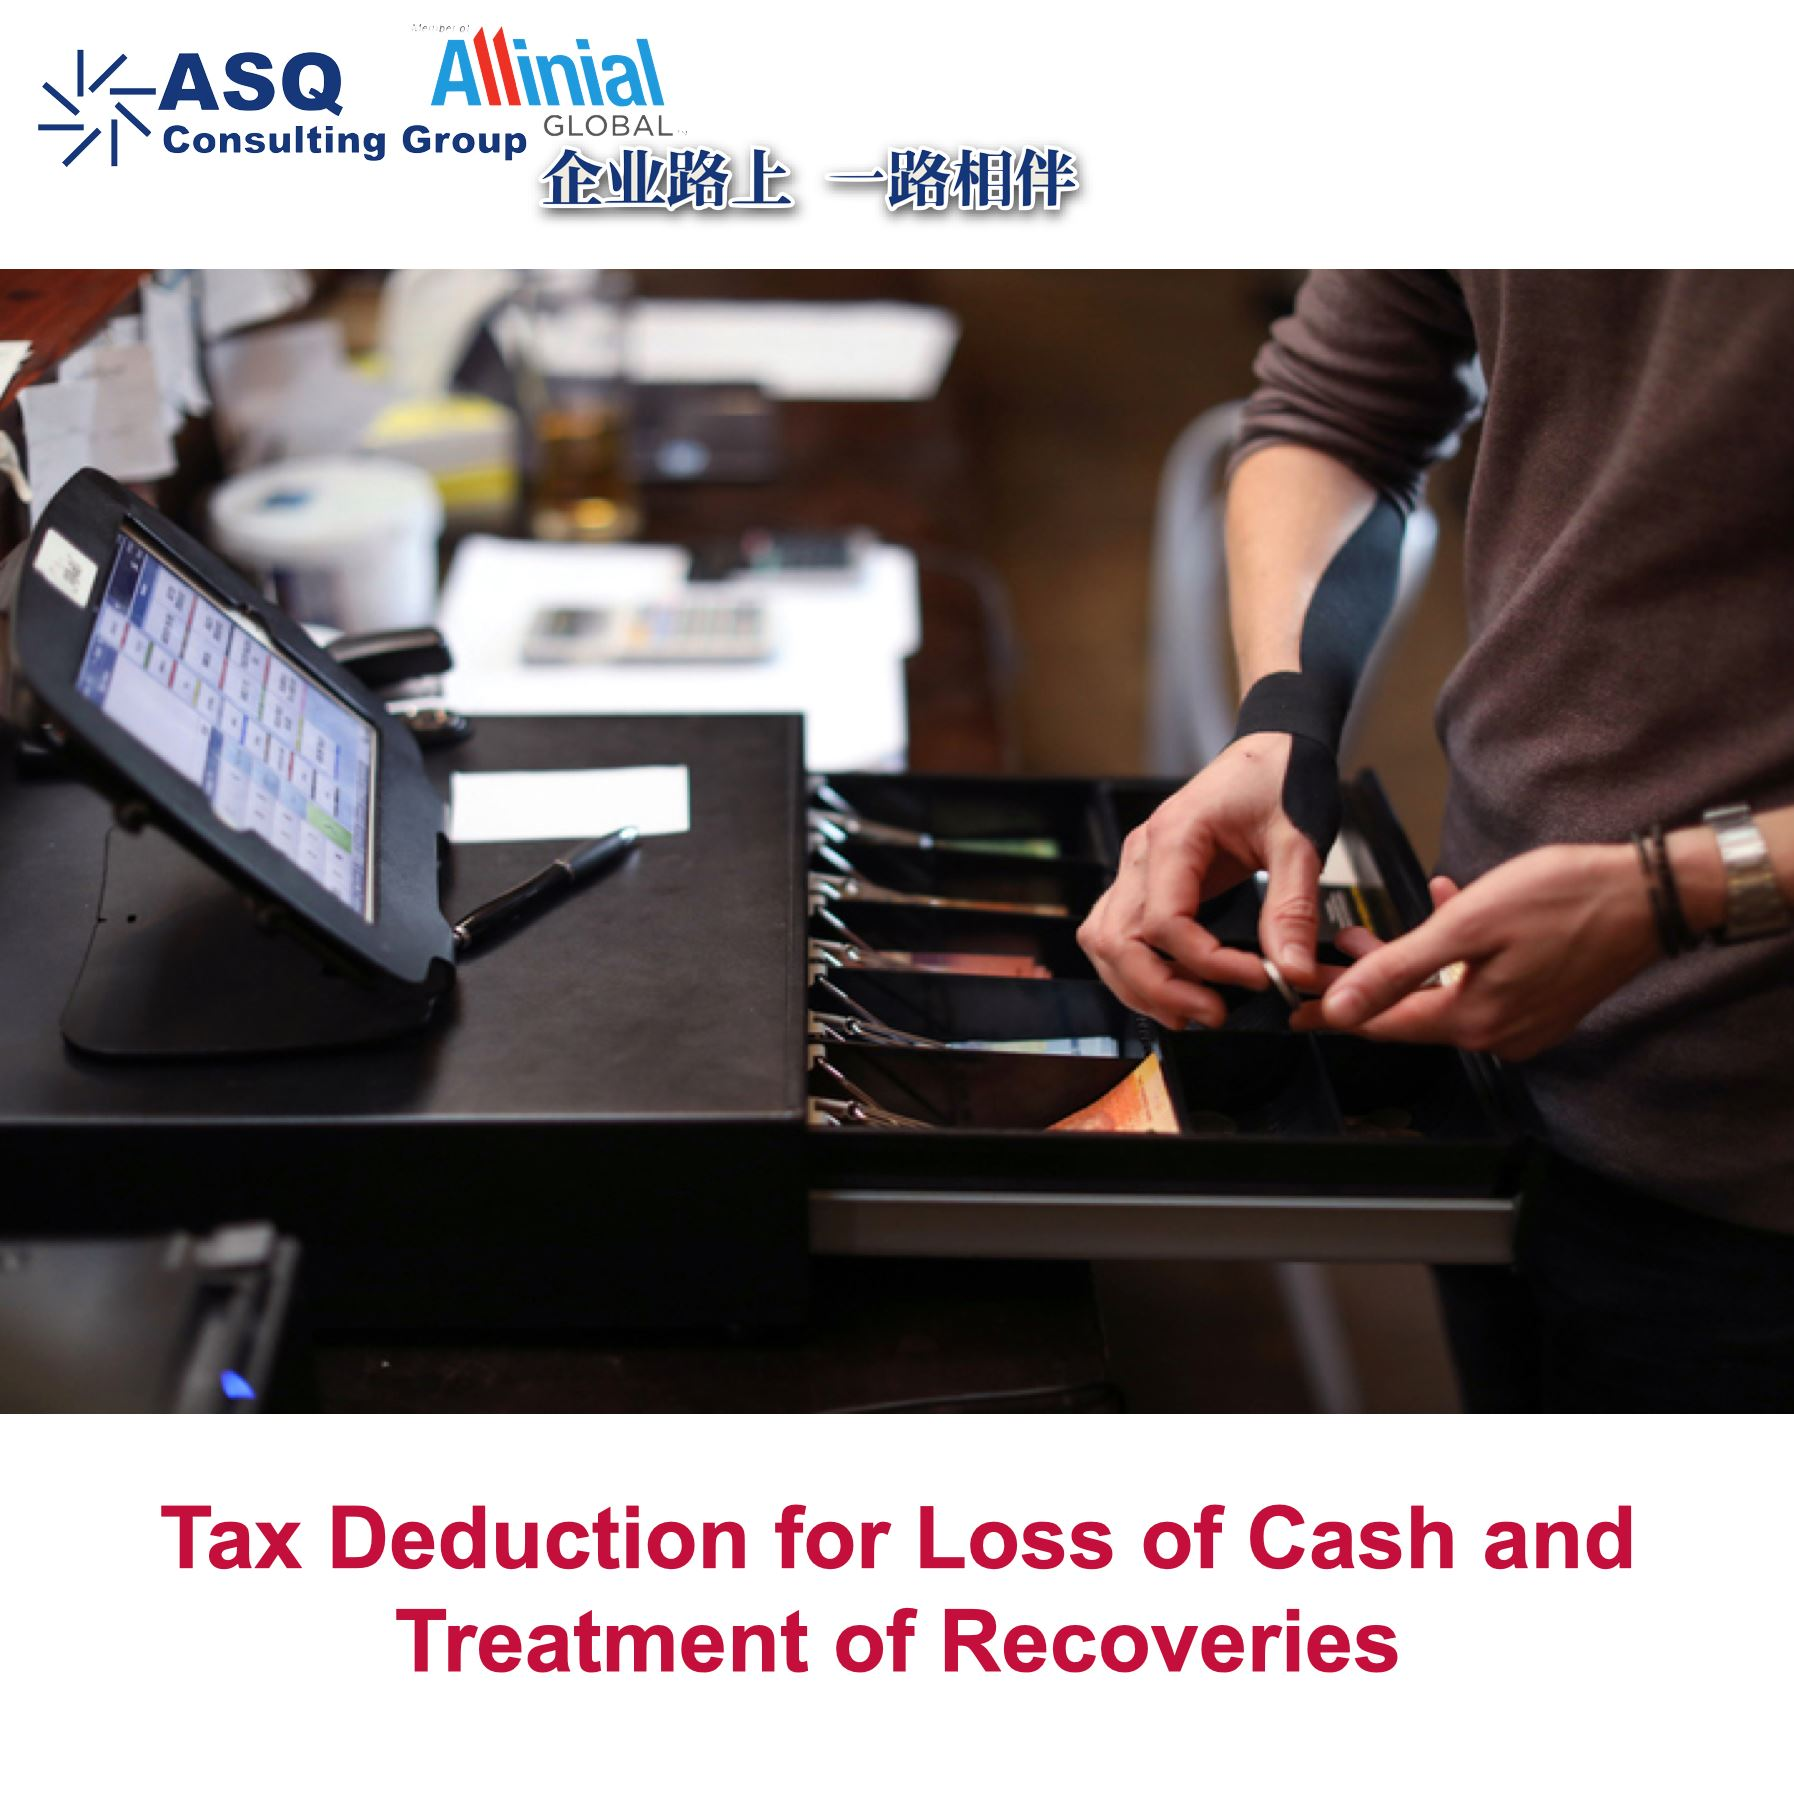 Tax Reduction for Loss of Cash and Treatment Recoveries